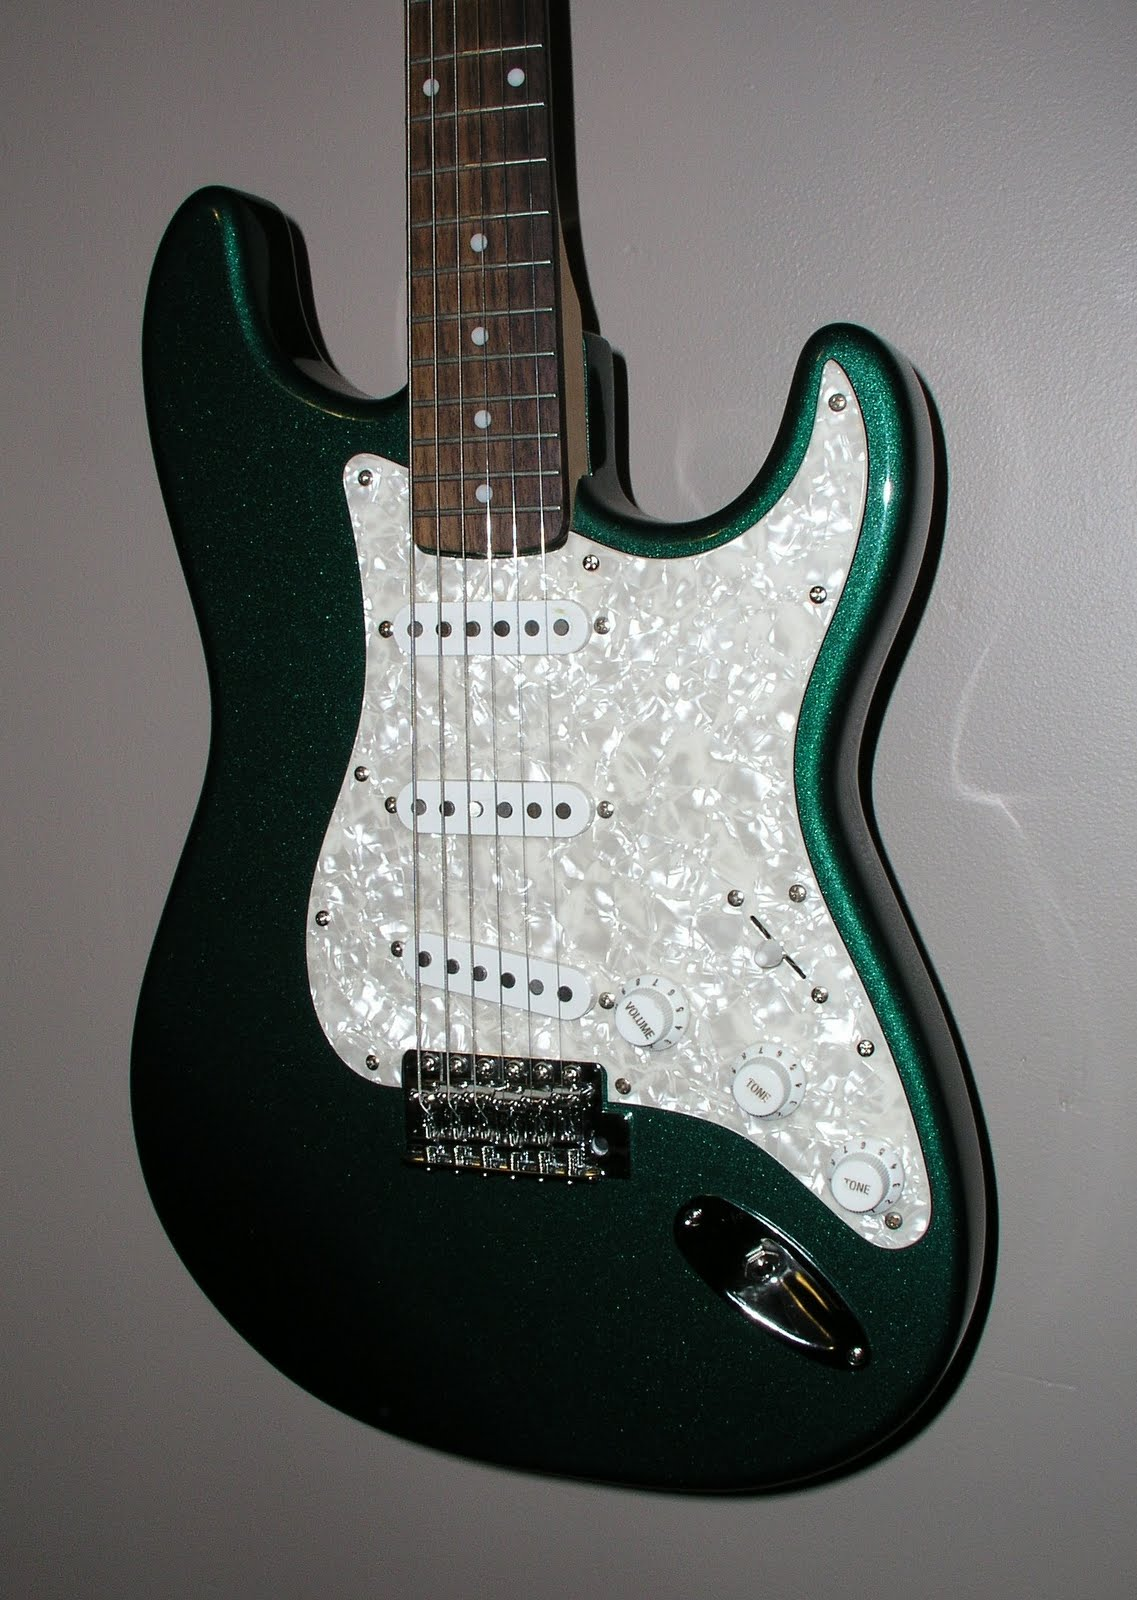 The Guitar Rescue Project Wiring Diagram Further Fender Squier Bullet Strat One Of Parts Projects That I Picked Up Was A Standard Body In Metallic Green Still Had Great Set Pickups Floating Around